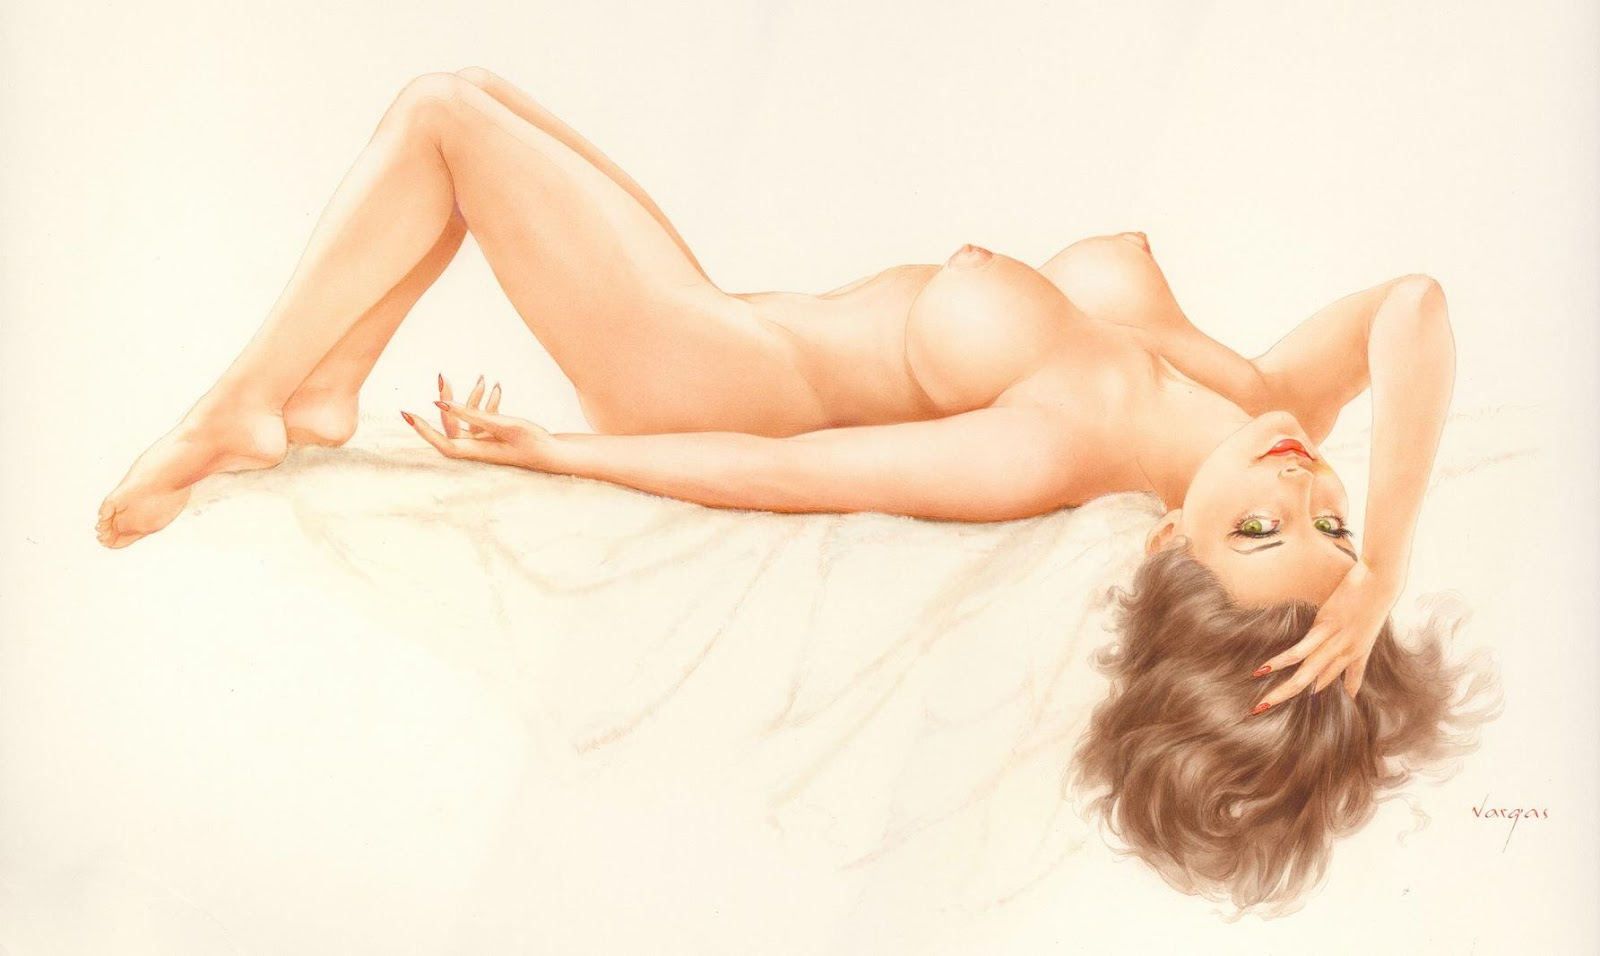 Slice of Cheesecake: Vargas pinups for Playboy